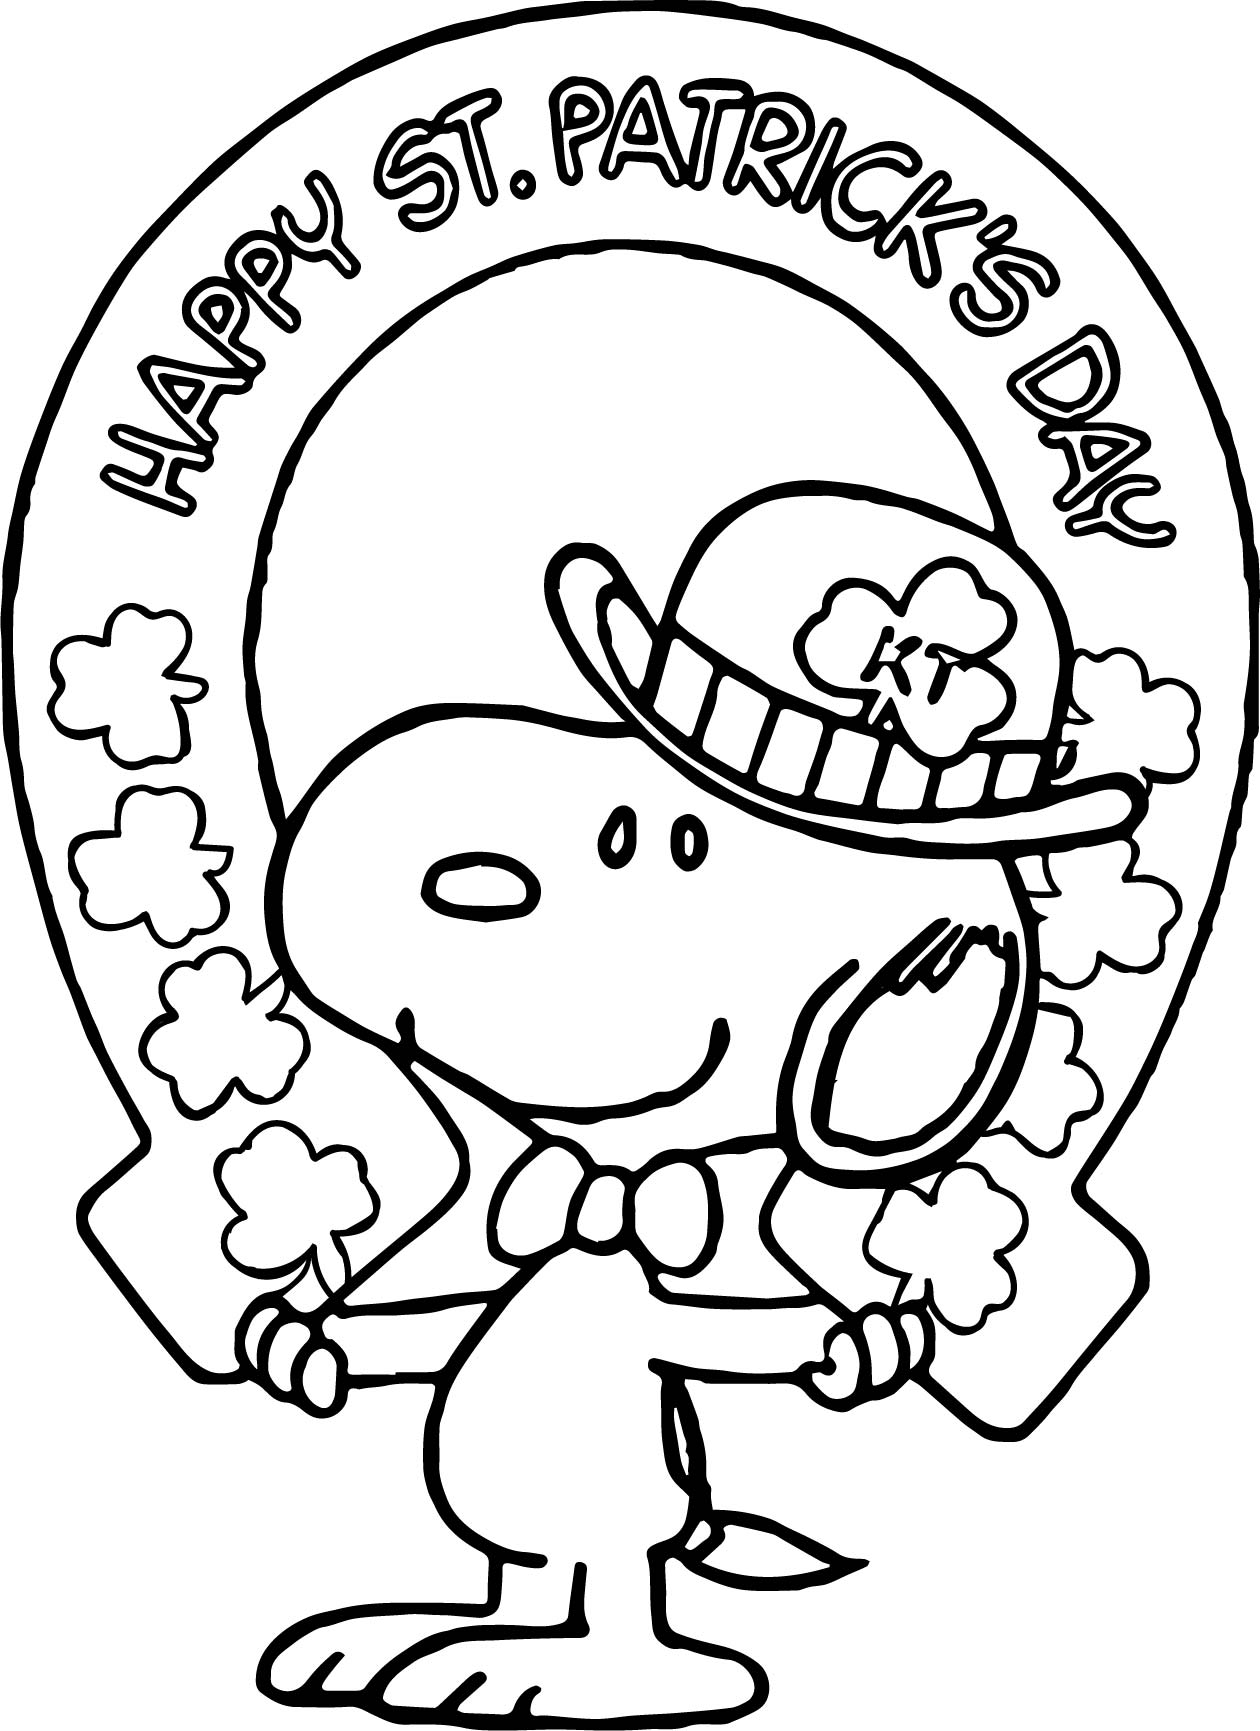 st patrick day coloring pages free - beachy st patrick snoopy all saint day coloring page